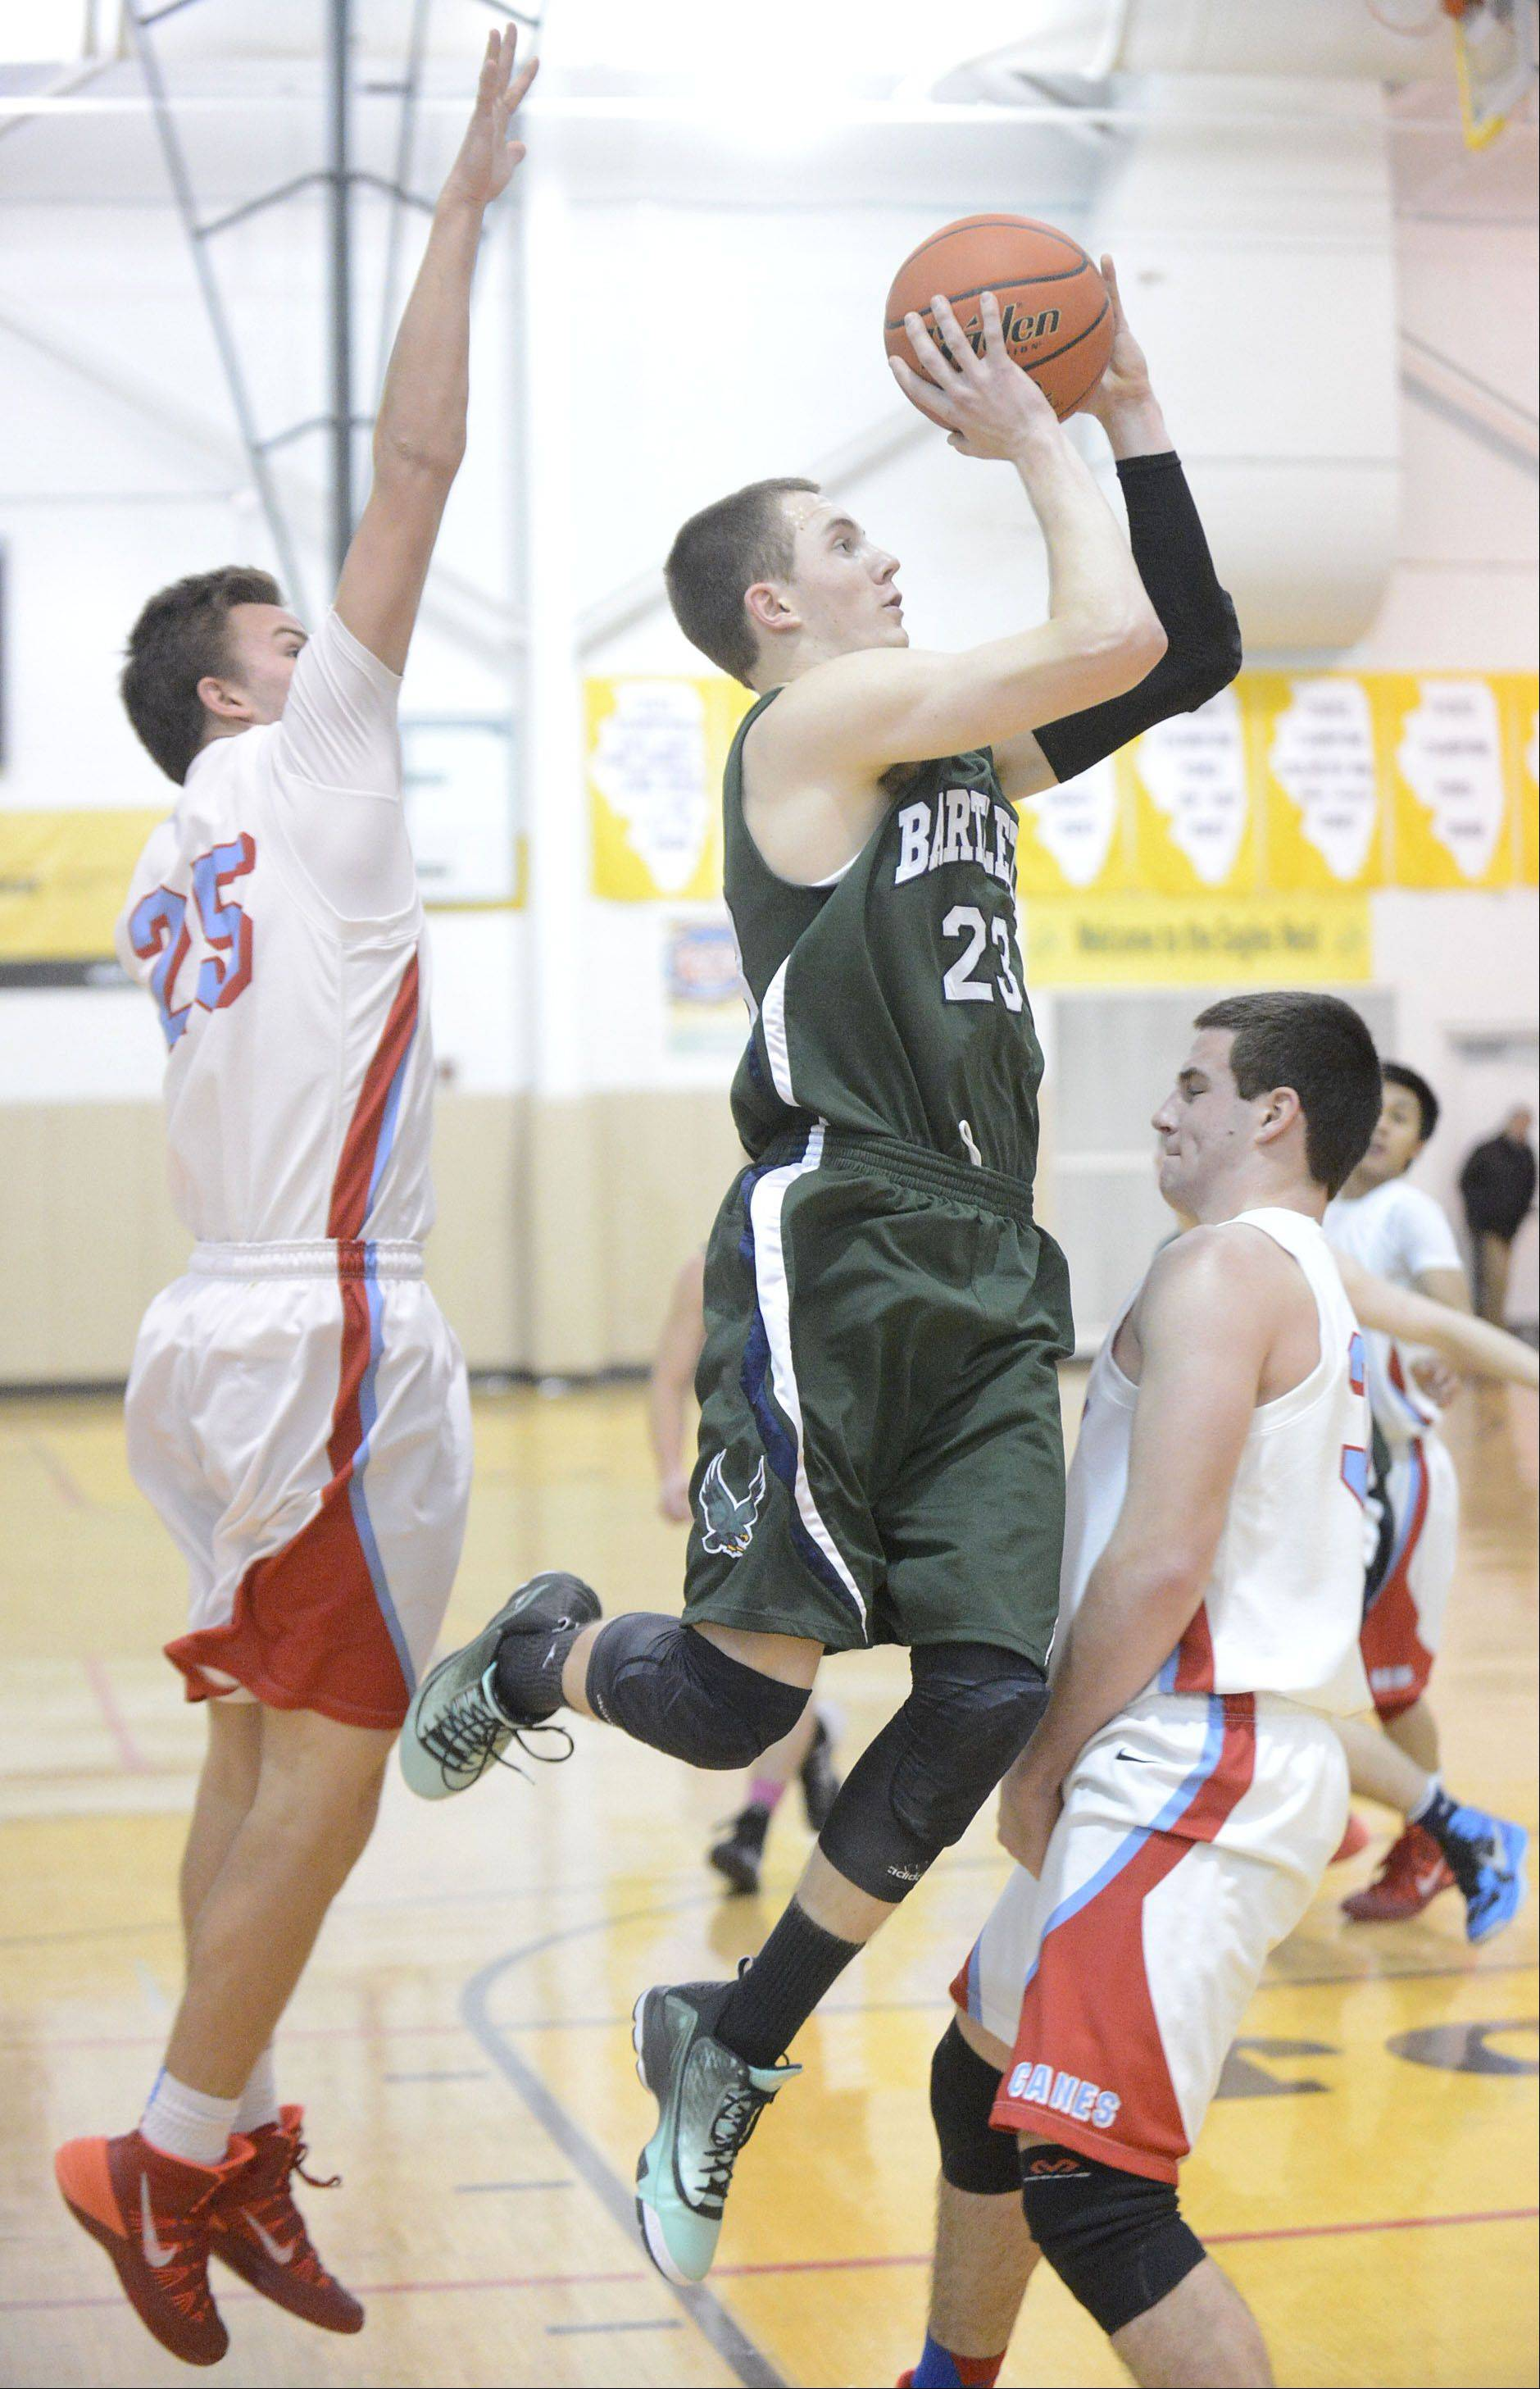 Bartlett's Ryan DiCanio shoots over Marian Central's Matthew Ricchiuto in the first quarter on Saturday, December 21.